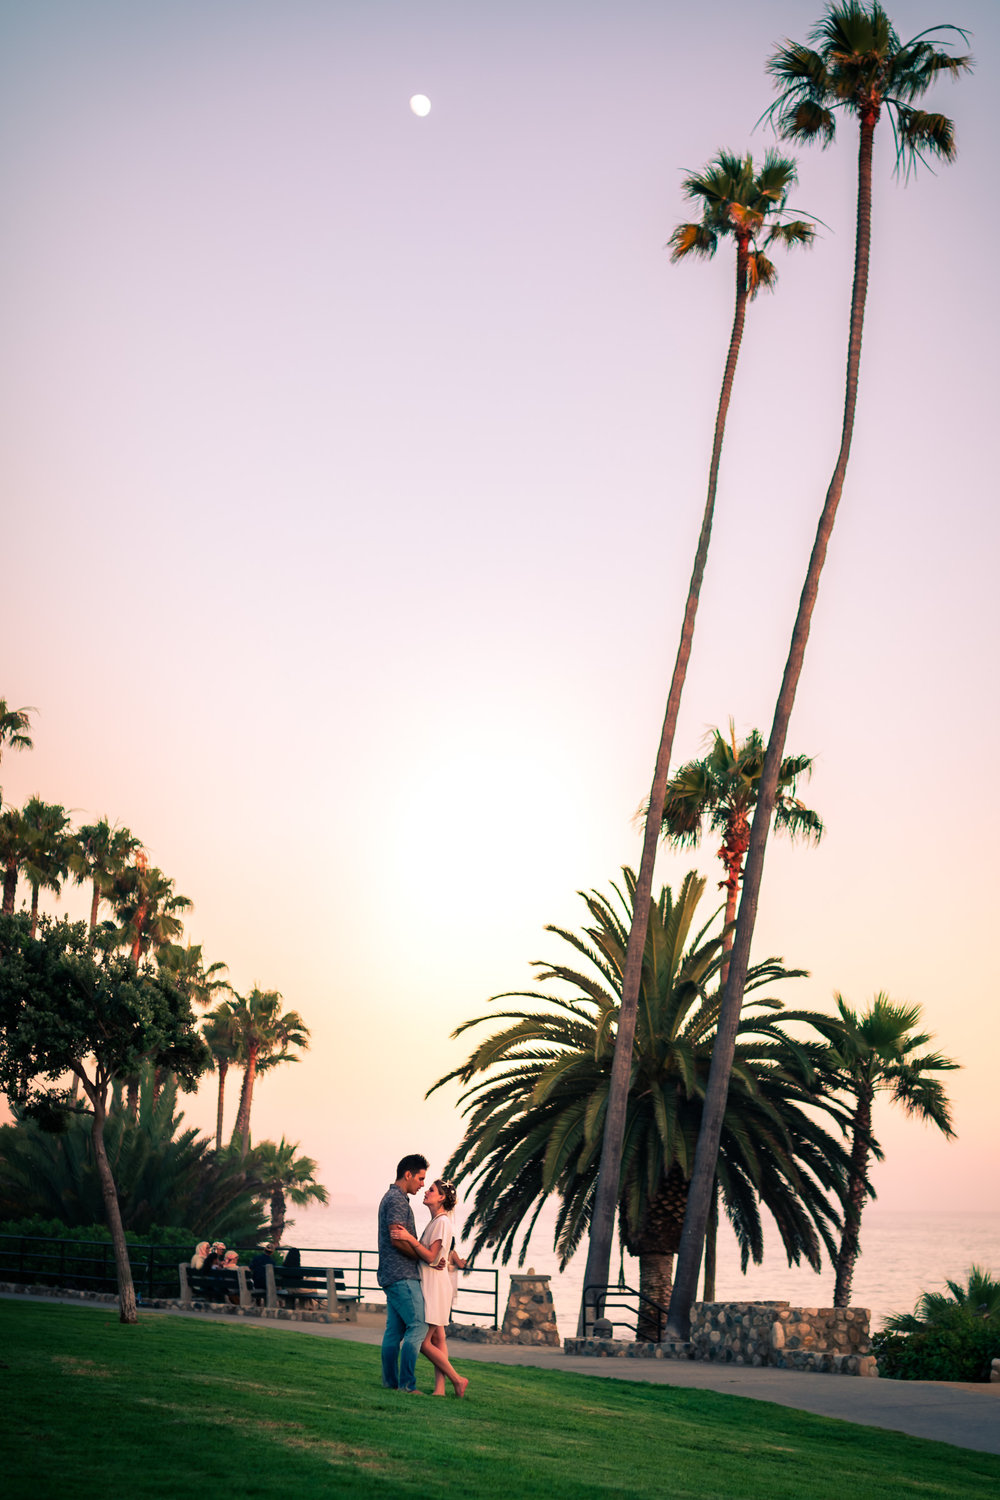 61__Bruno-Amanda-Laguna-beach-engagement_Joseph-Barber-Weddings_3207.jpg